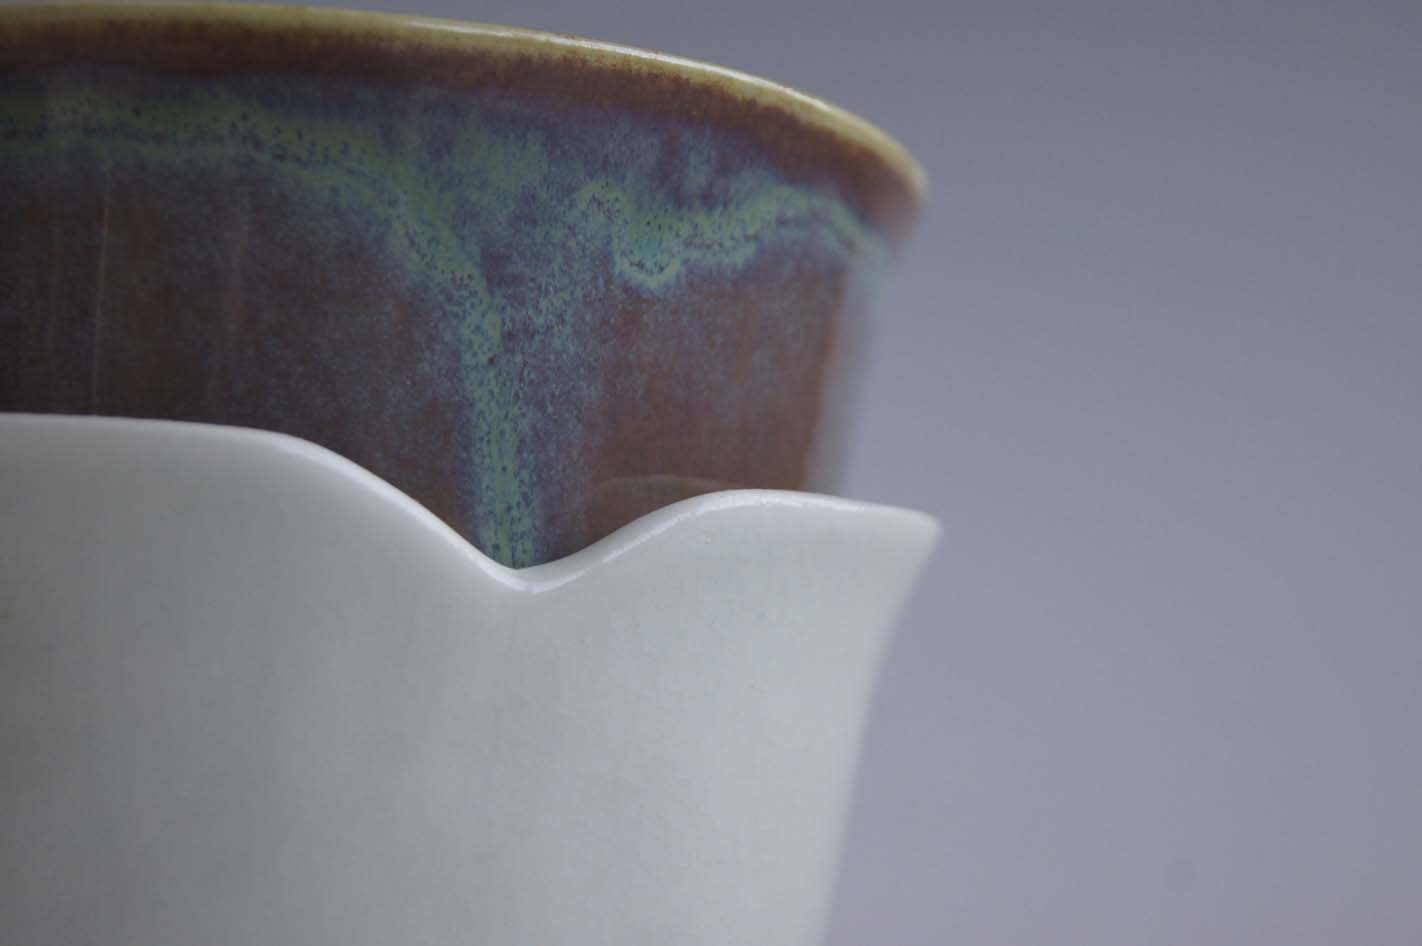 cupdetail